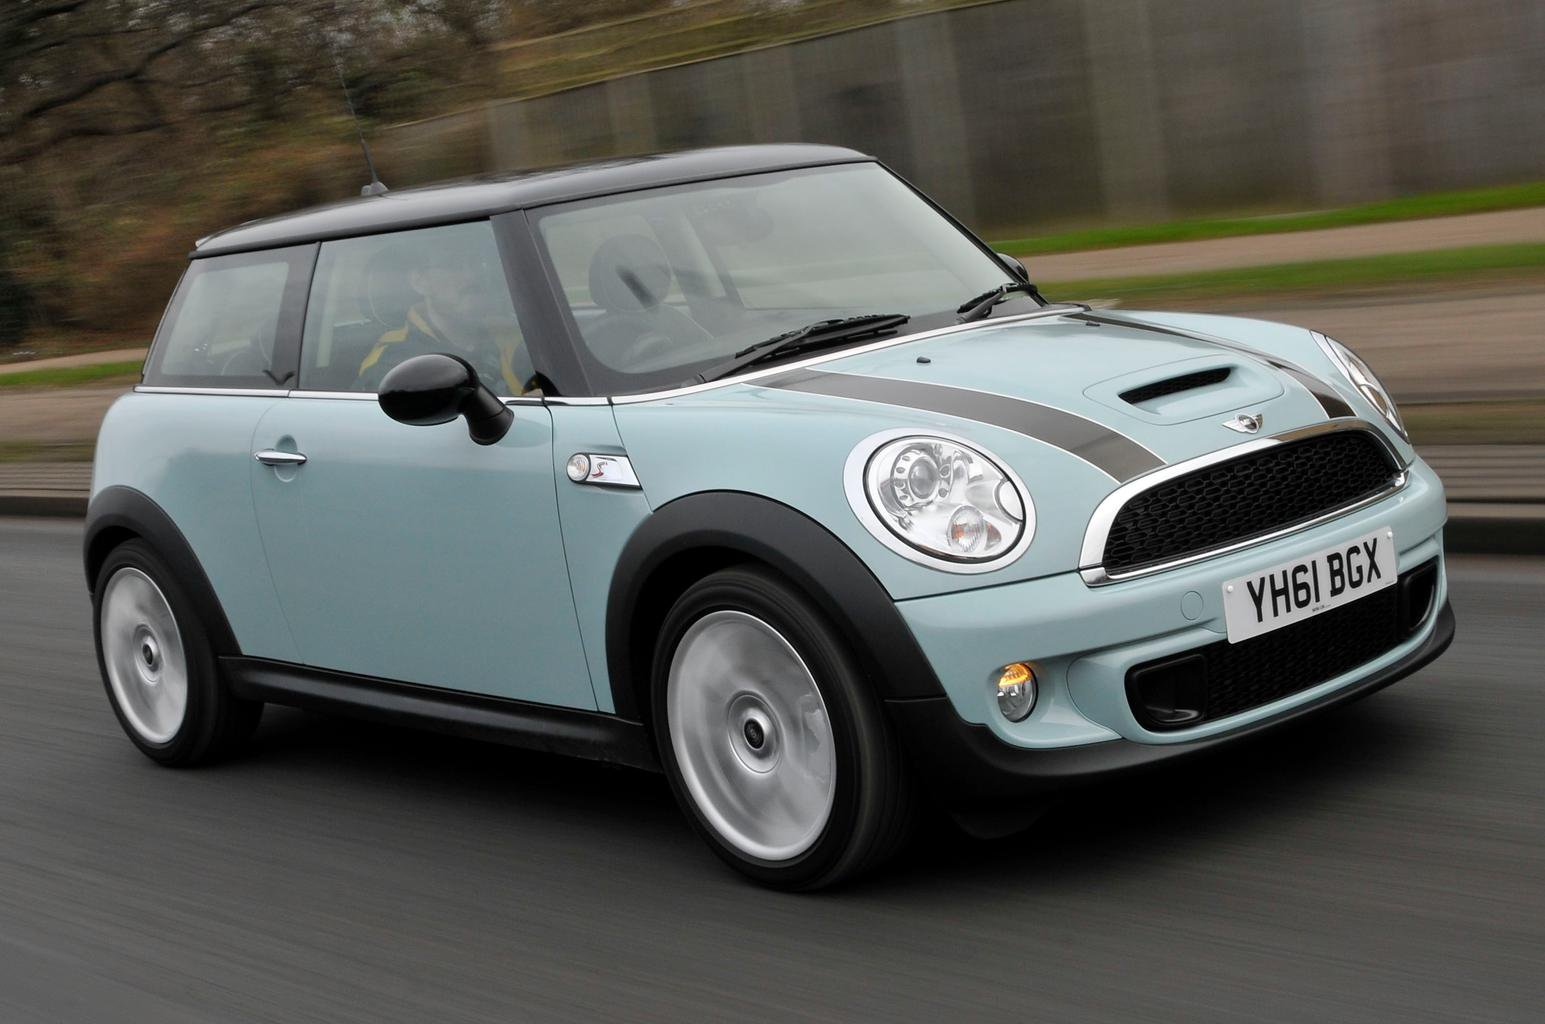 Used test – high fashion: Mini Cooper S vs Nissan Juke vs Volkswagen Beetle